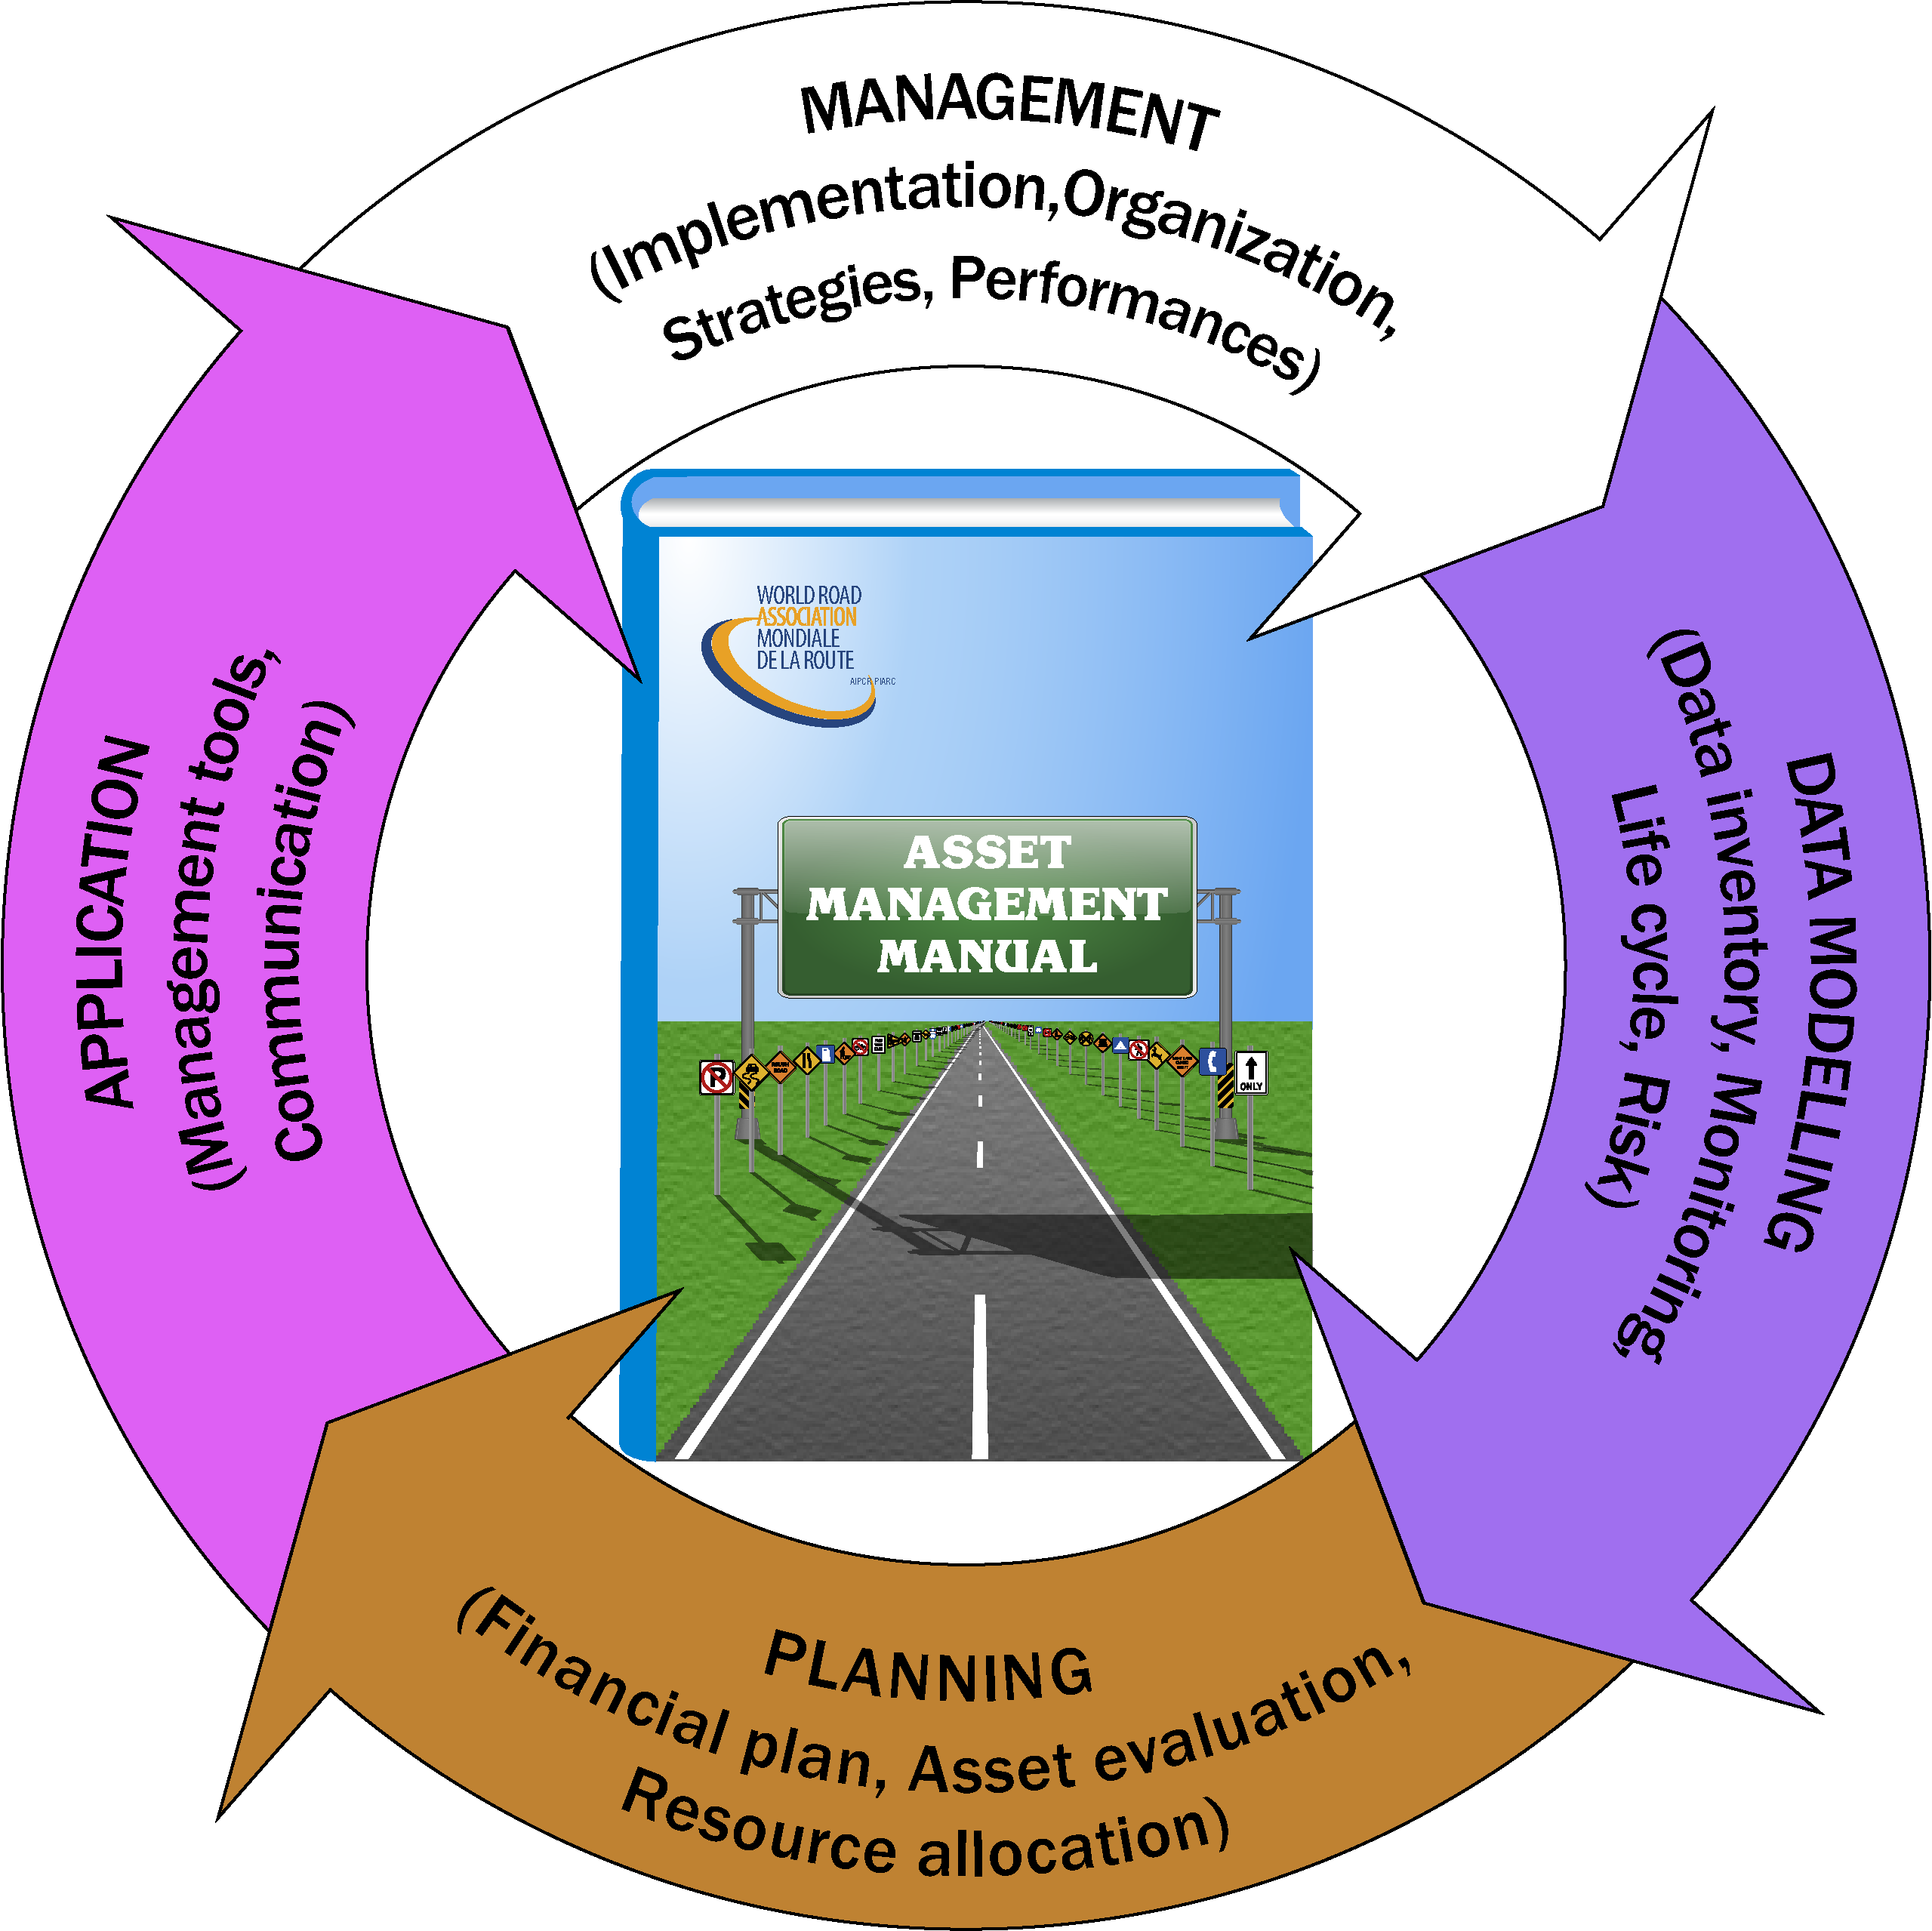 Asset Management Manual.